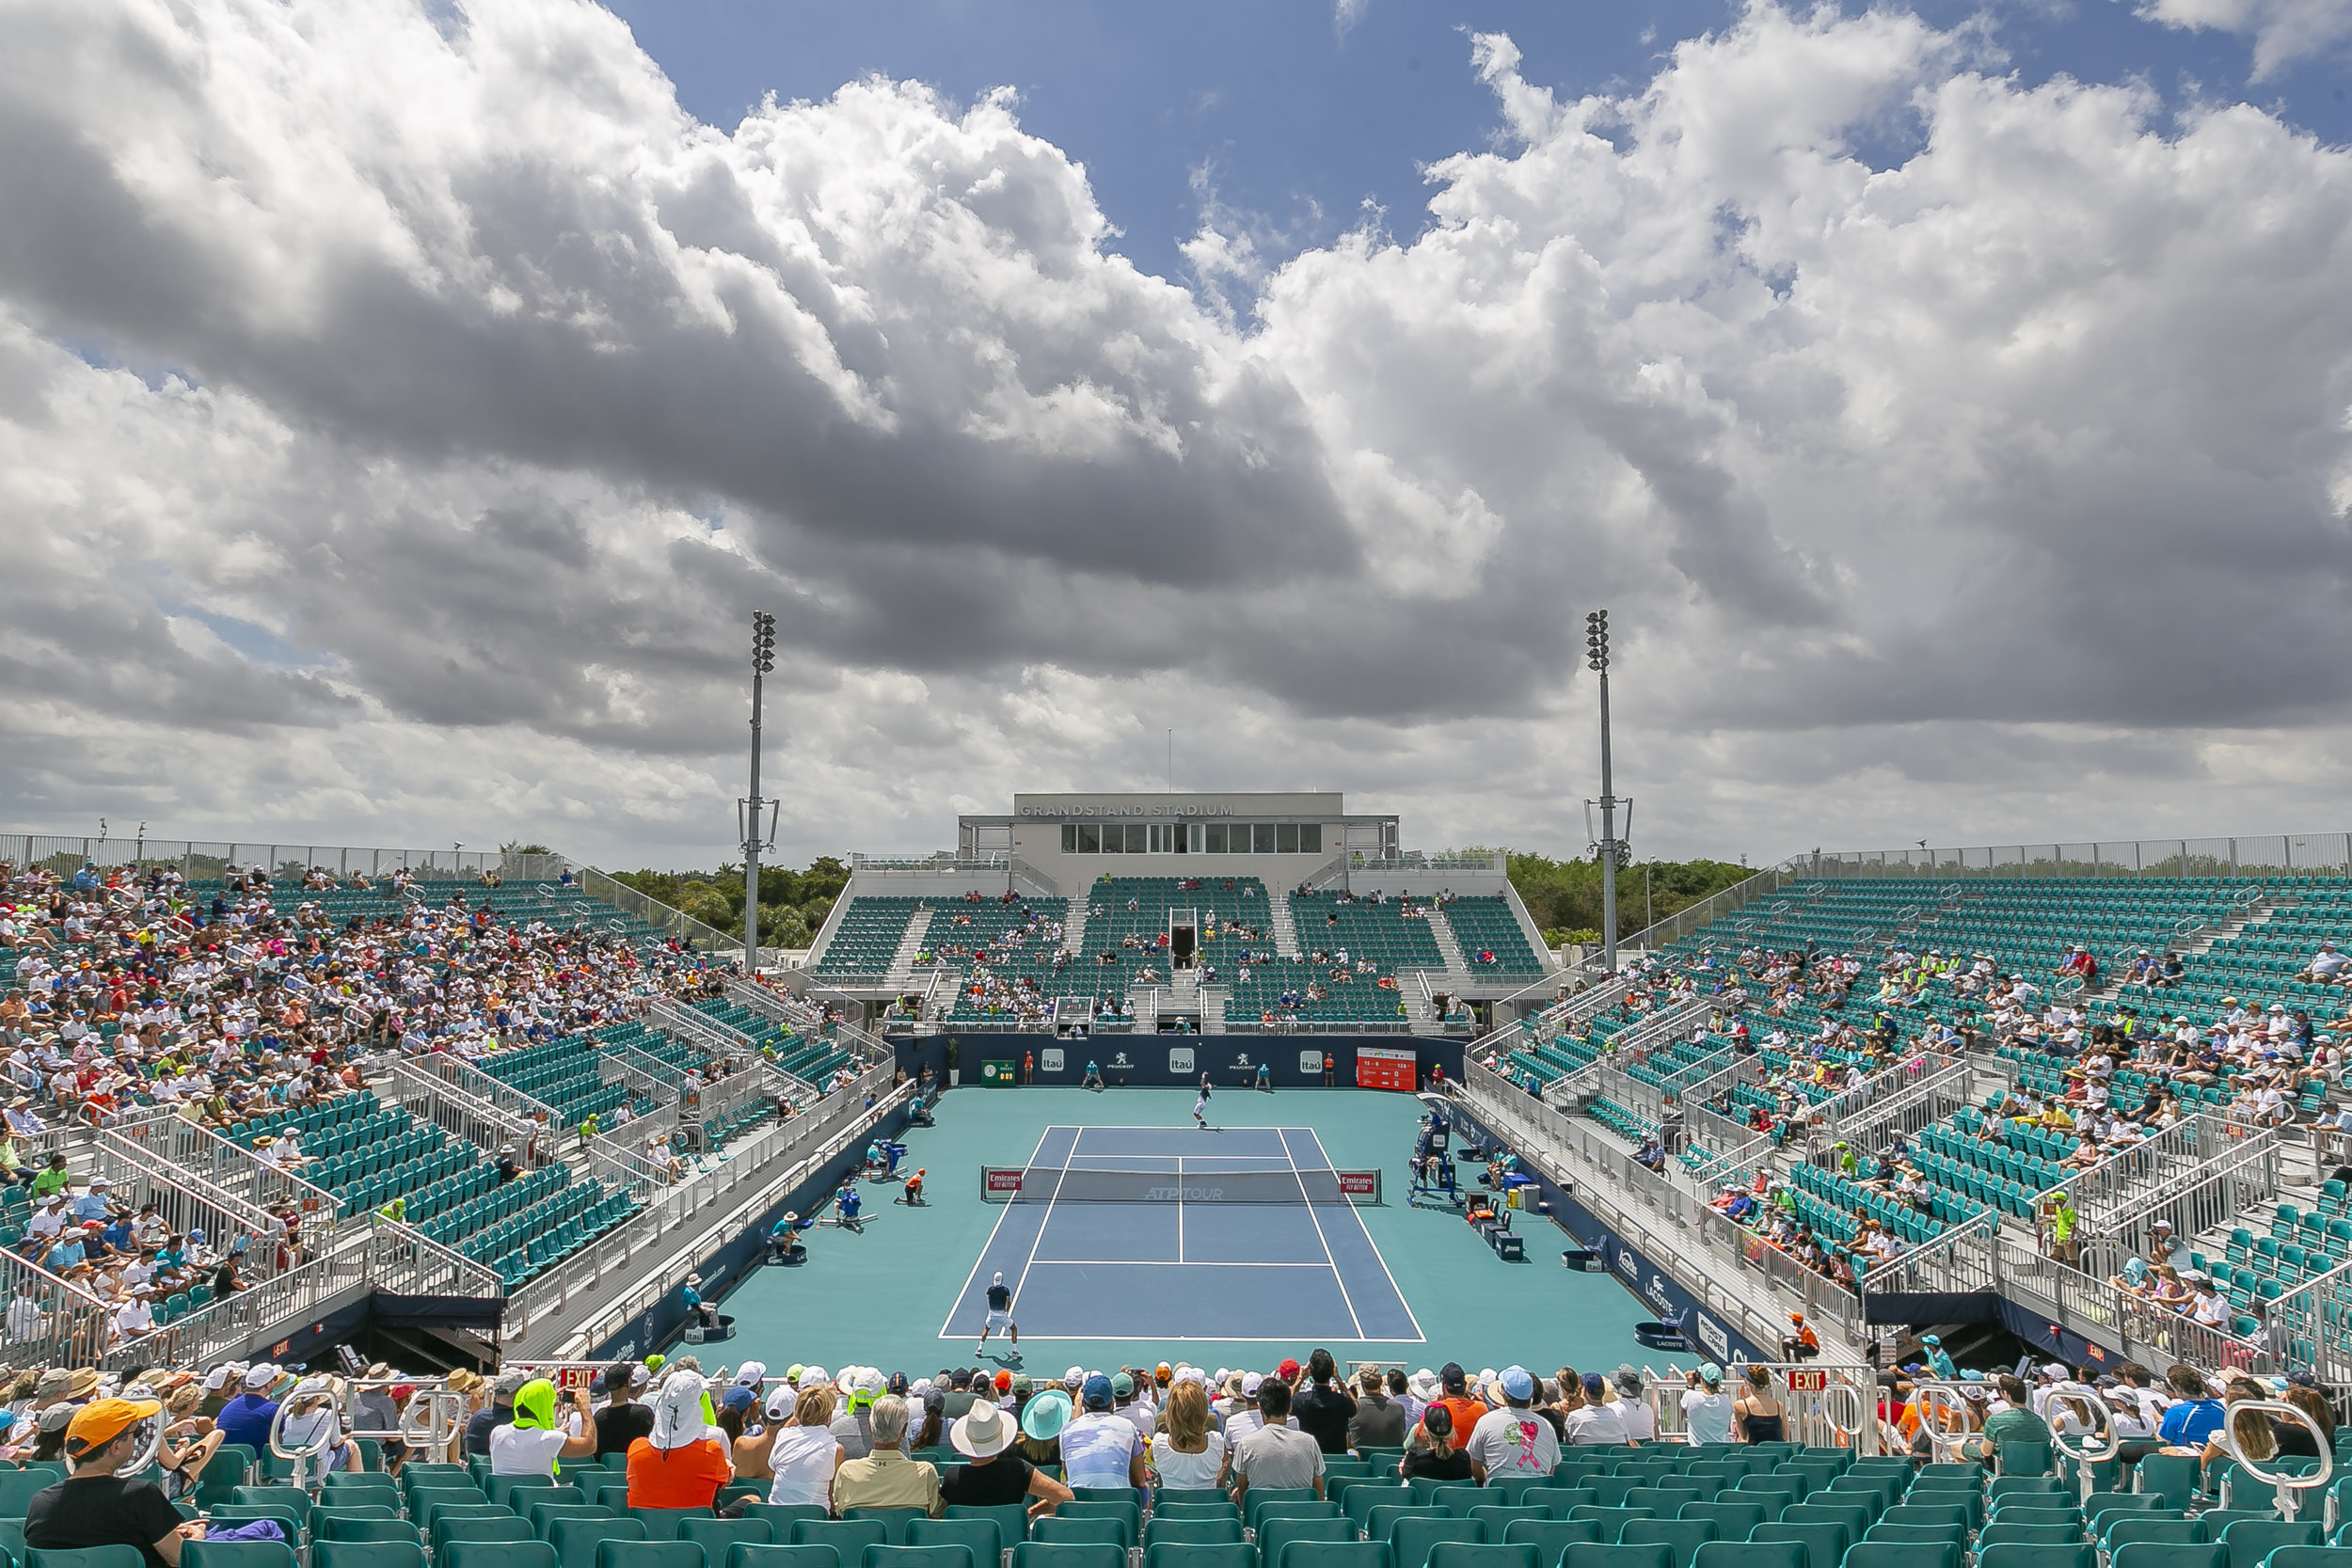 Attendees watch a match between Joao Sousa, of Portugal, and Kevin Anderson, of South Africa, during their match at the Miami Open tennis tournament on Monday, March 25, 2019 at Hard Rock Stadium in Miami Gardens.